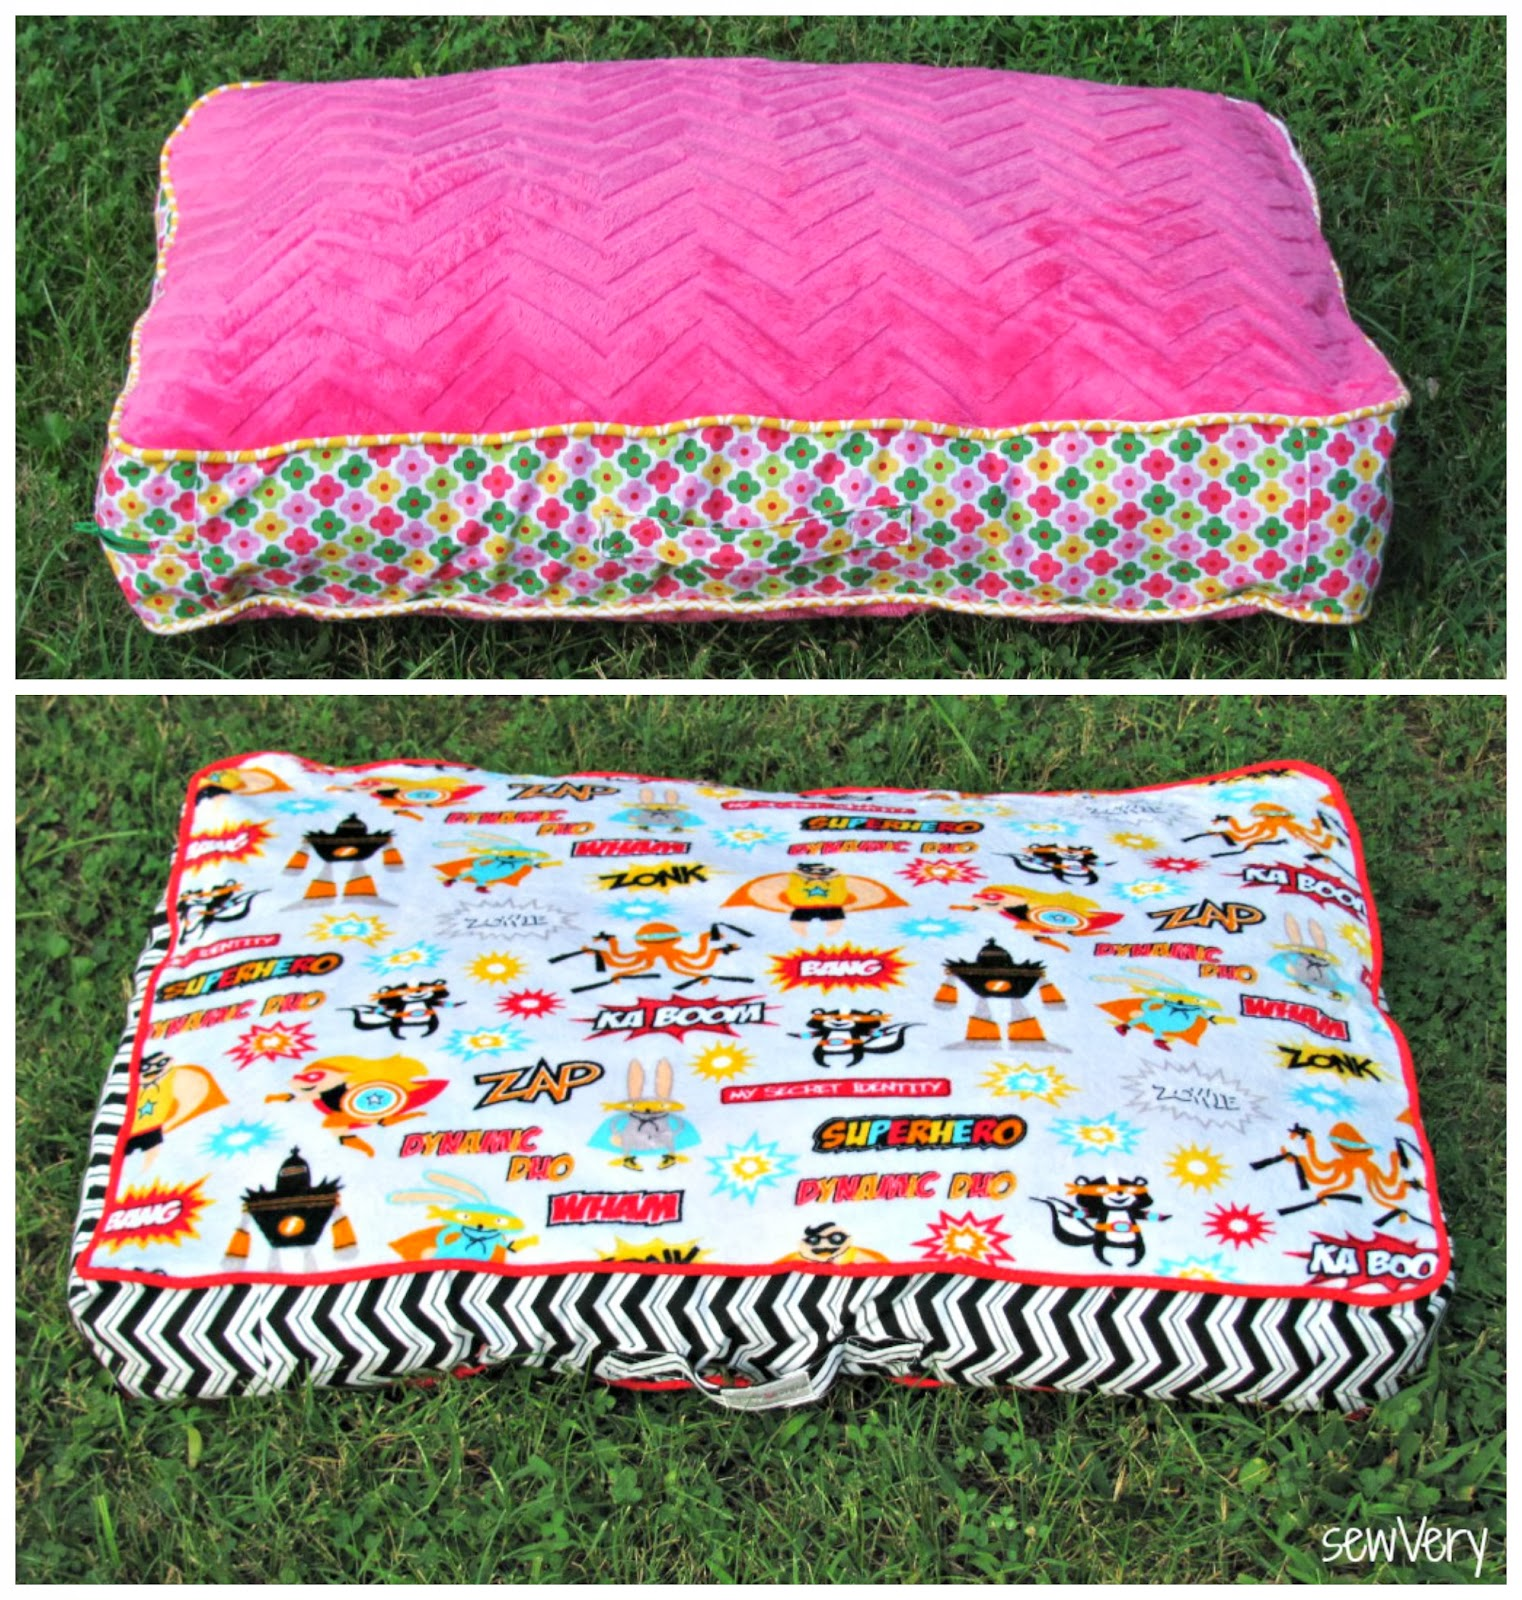 How To Sew A Large Floor Pillow : Cuddle Floor Pillow & Matching Blanket Tutorial by sewVery ? Sewciety ? My Cuddle Corner